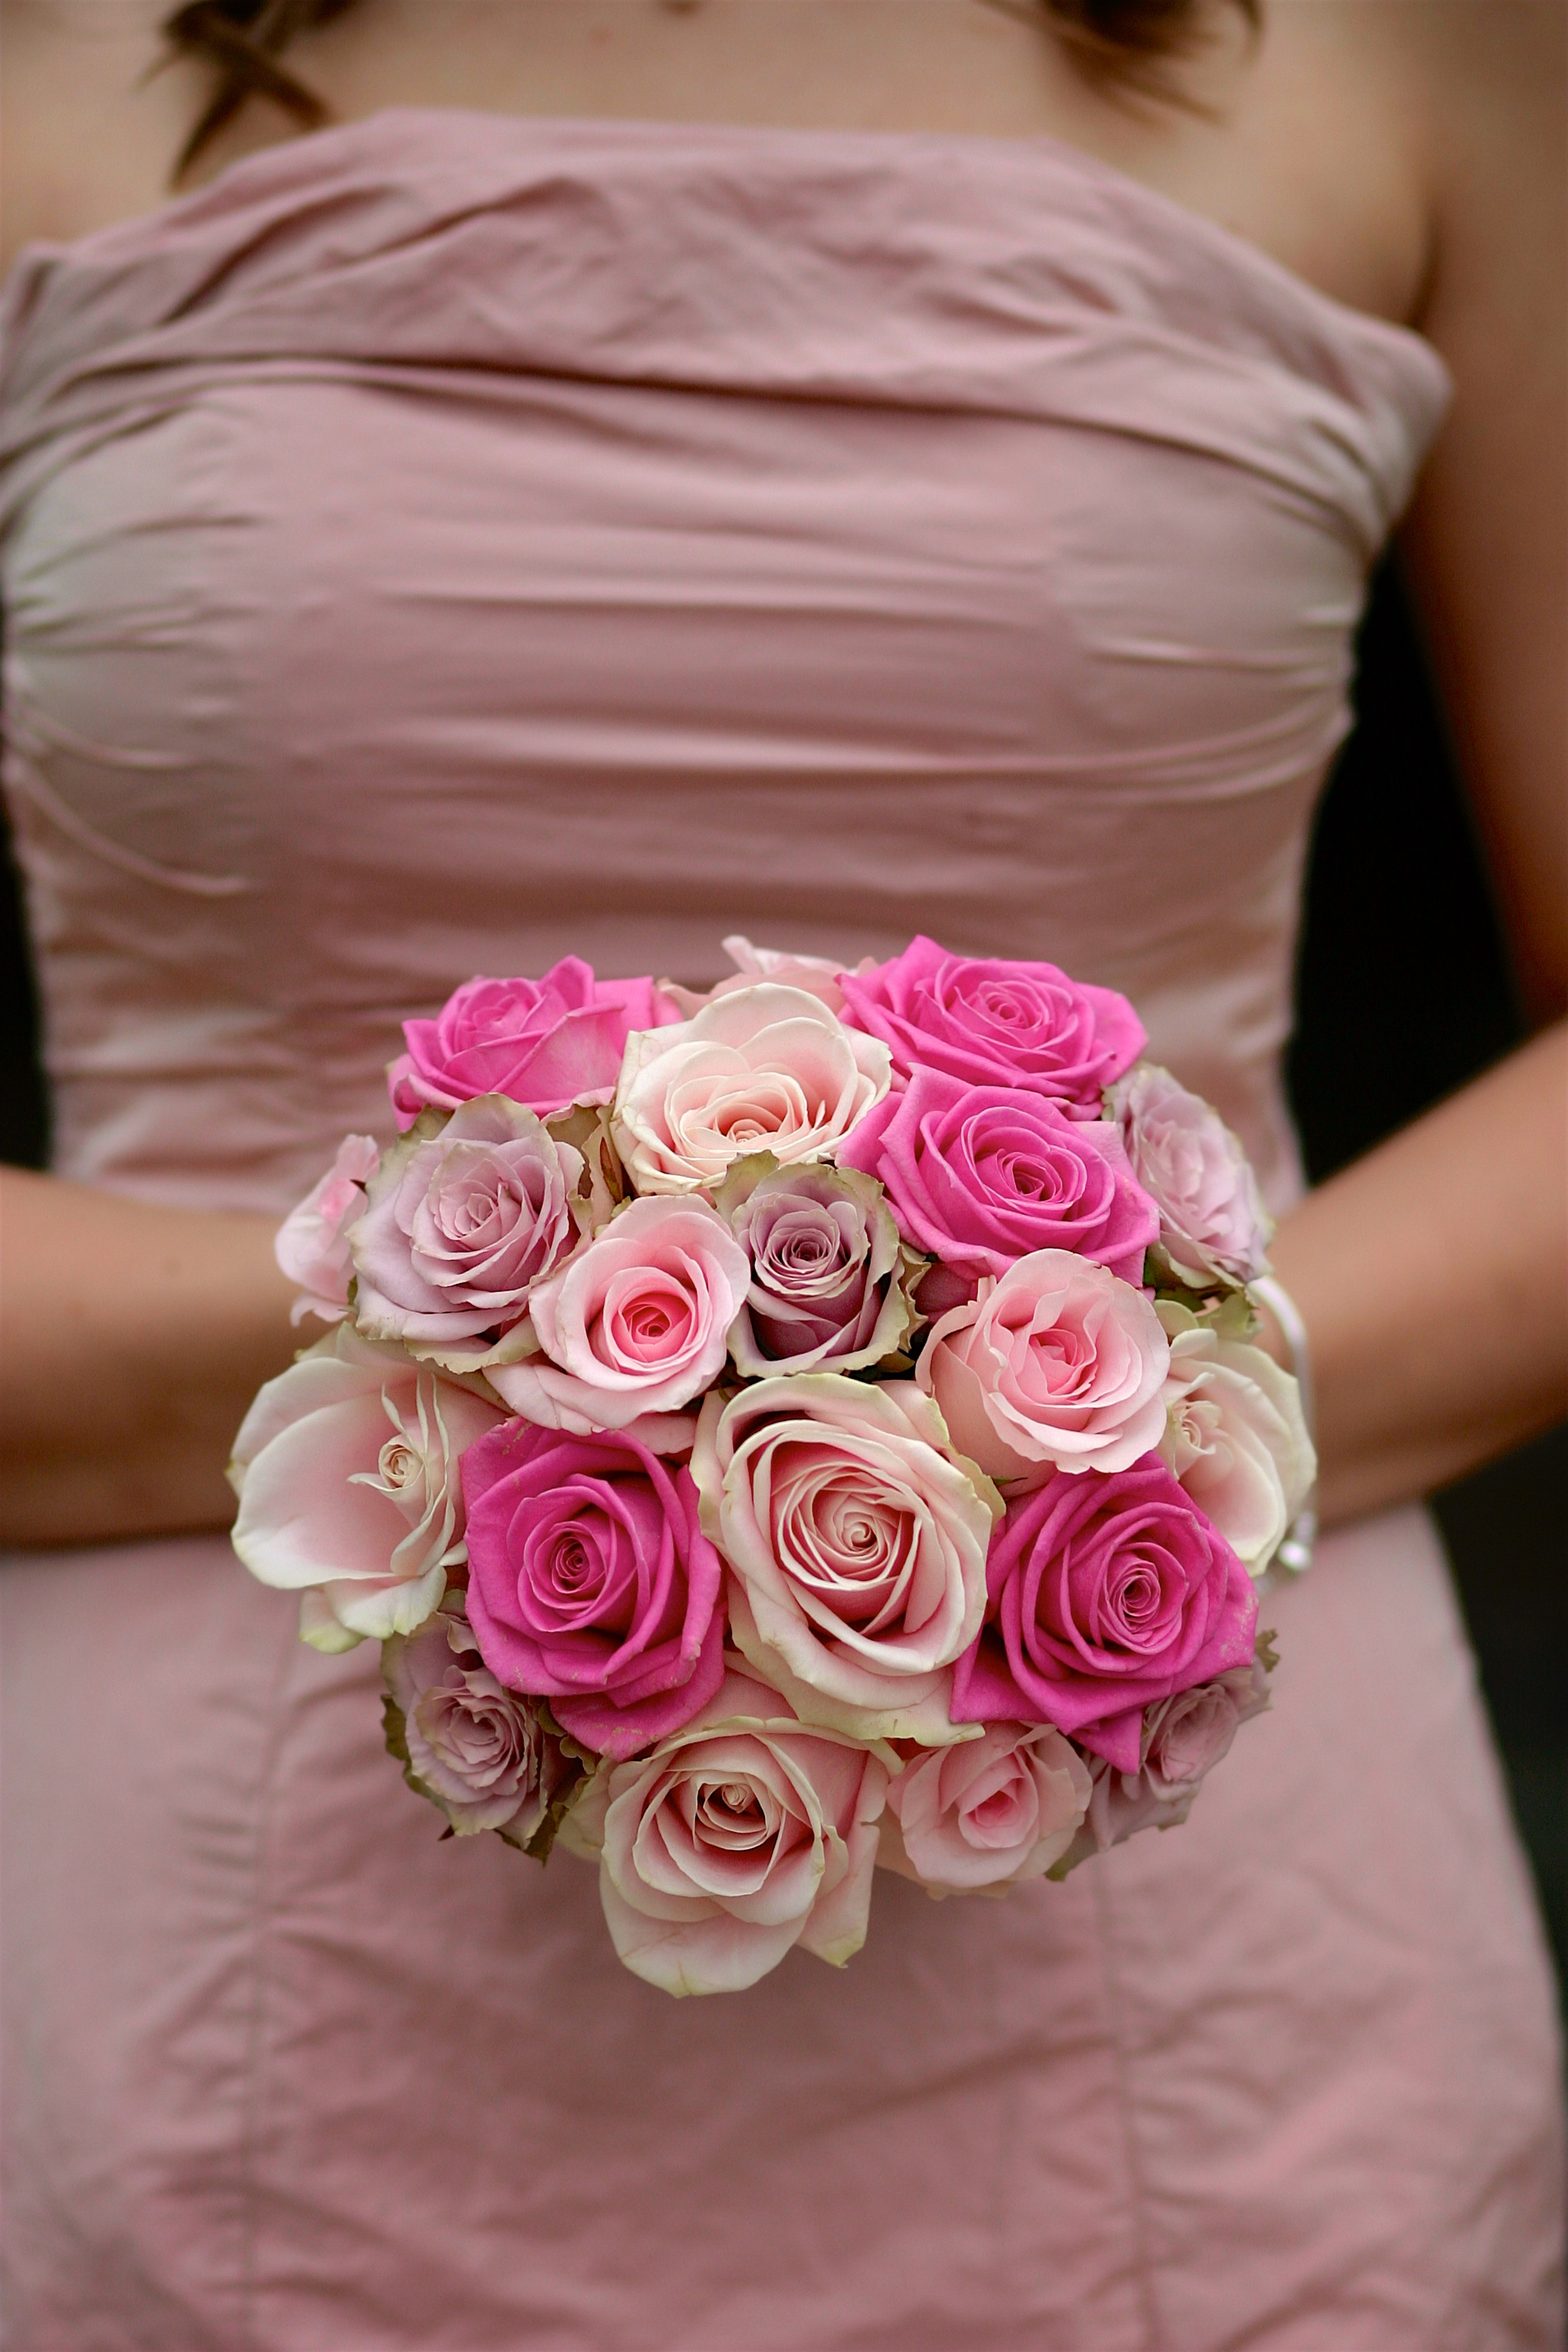 Bridesmaid with a bouquet of flowers